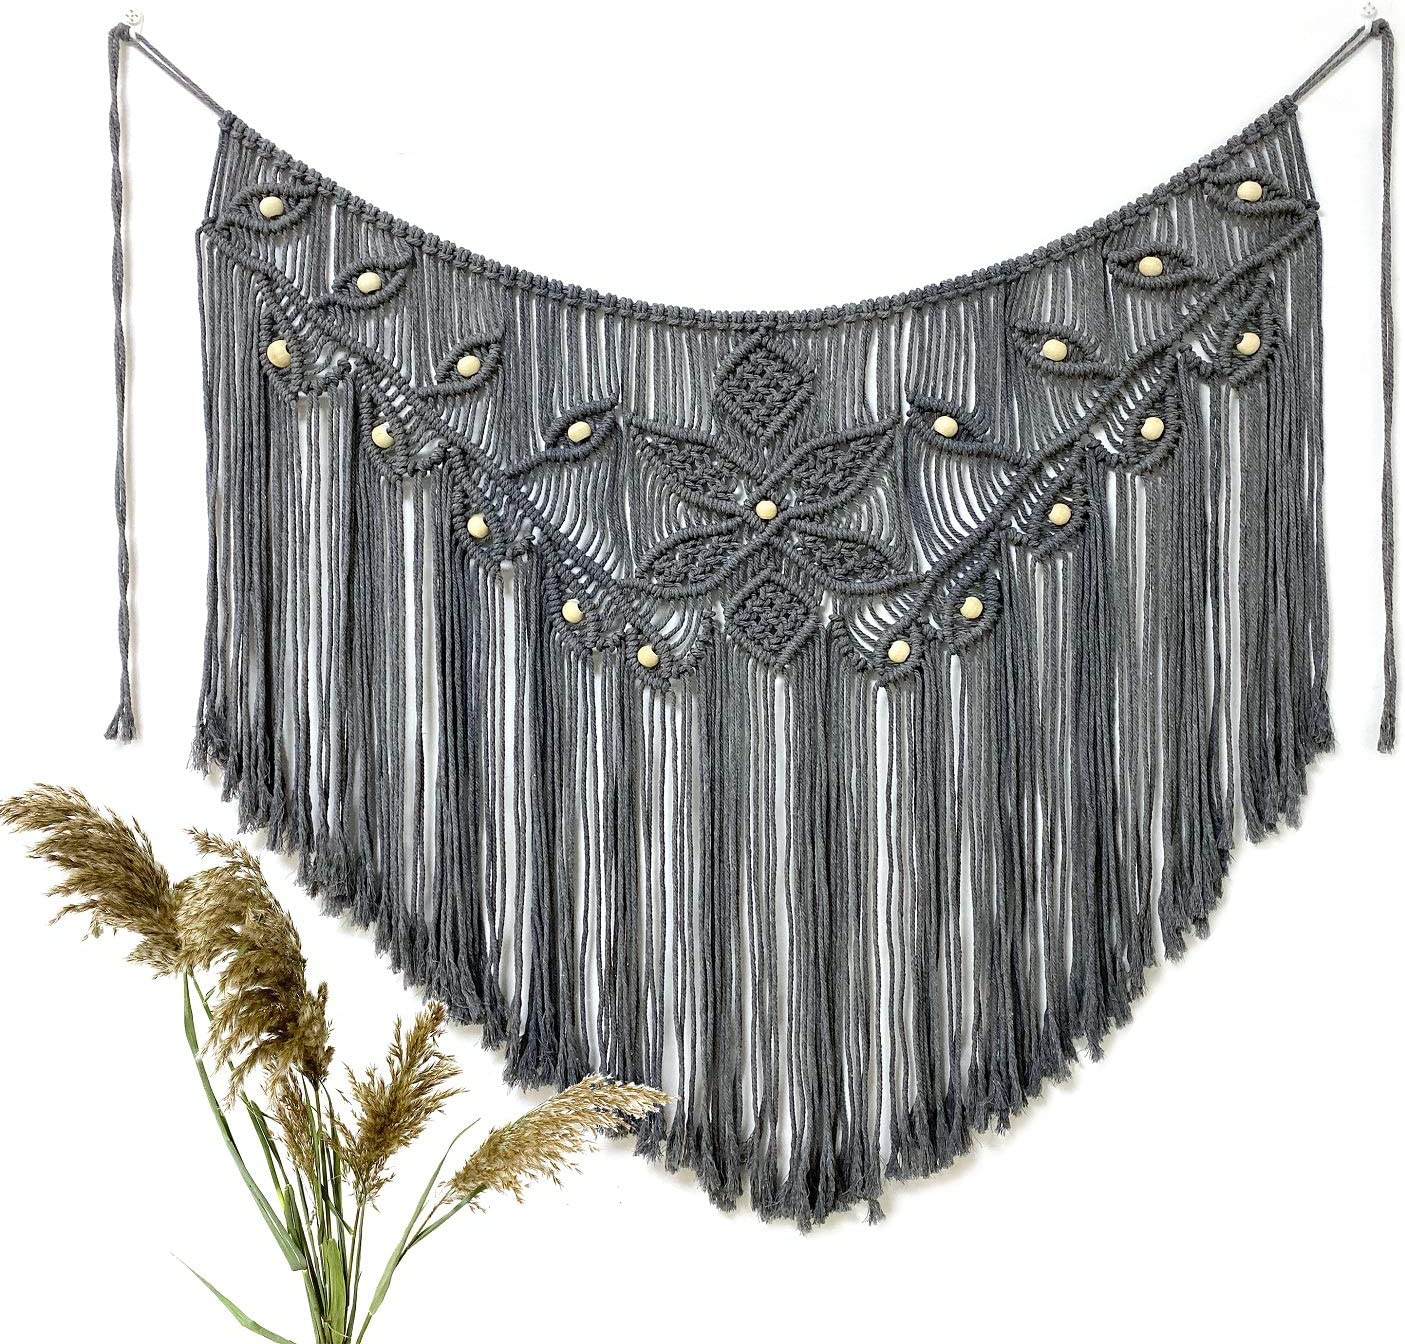 Youngeast Home Decor Leaf Ranking TOP10 Shape low-pricing Woven Macrame Tapes Hanging Wall